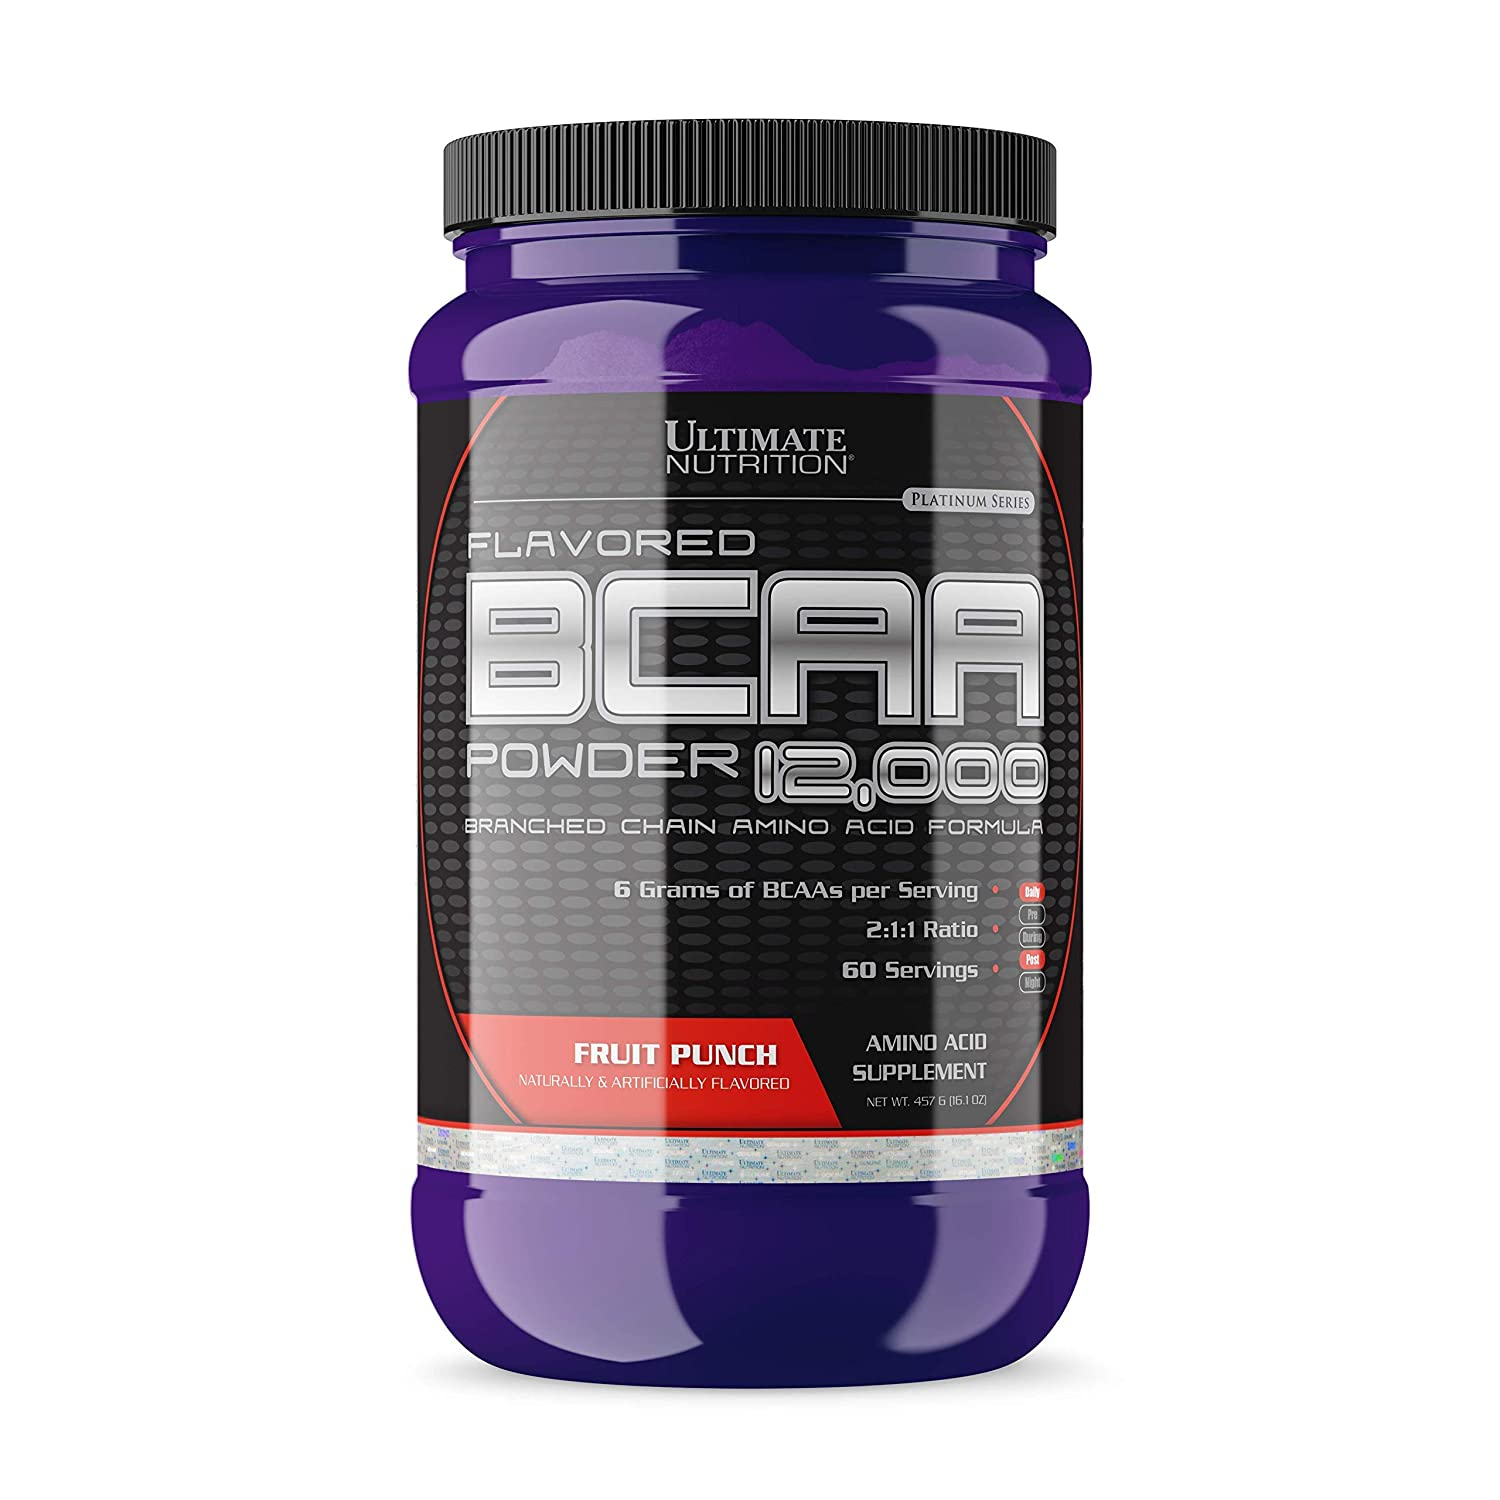 Ultimate Nutrition Flavored BCAA 12,000mg Branched Chain Amino Acid Supplement Powder, Fruit Punch, 457g